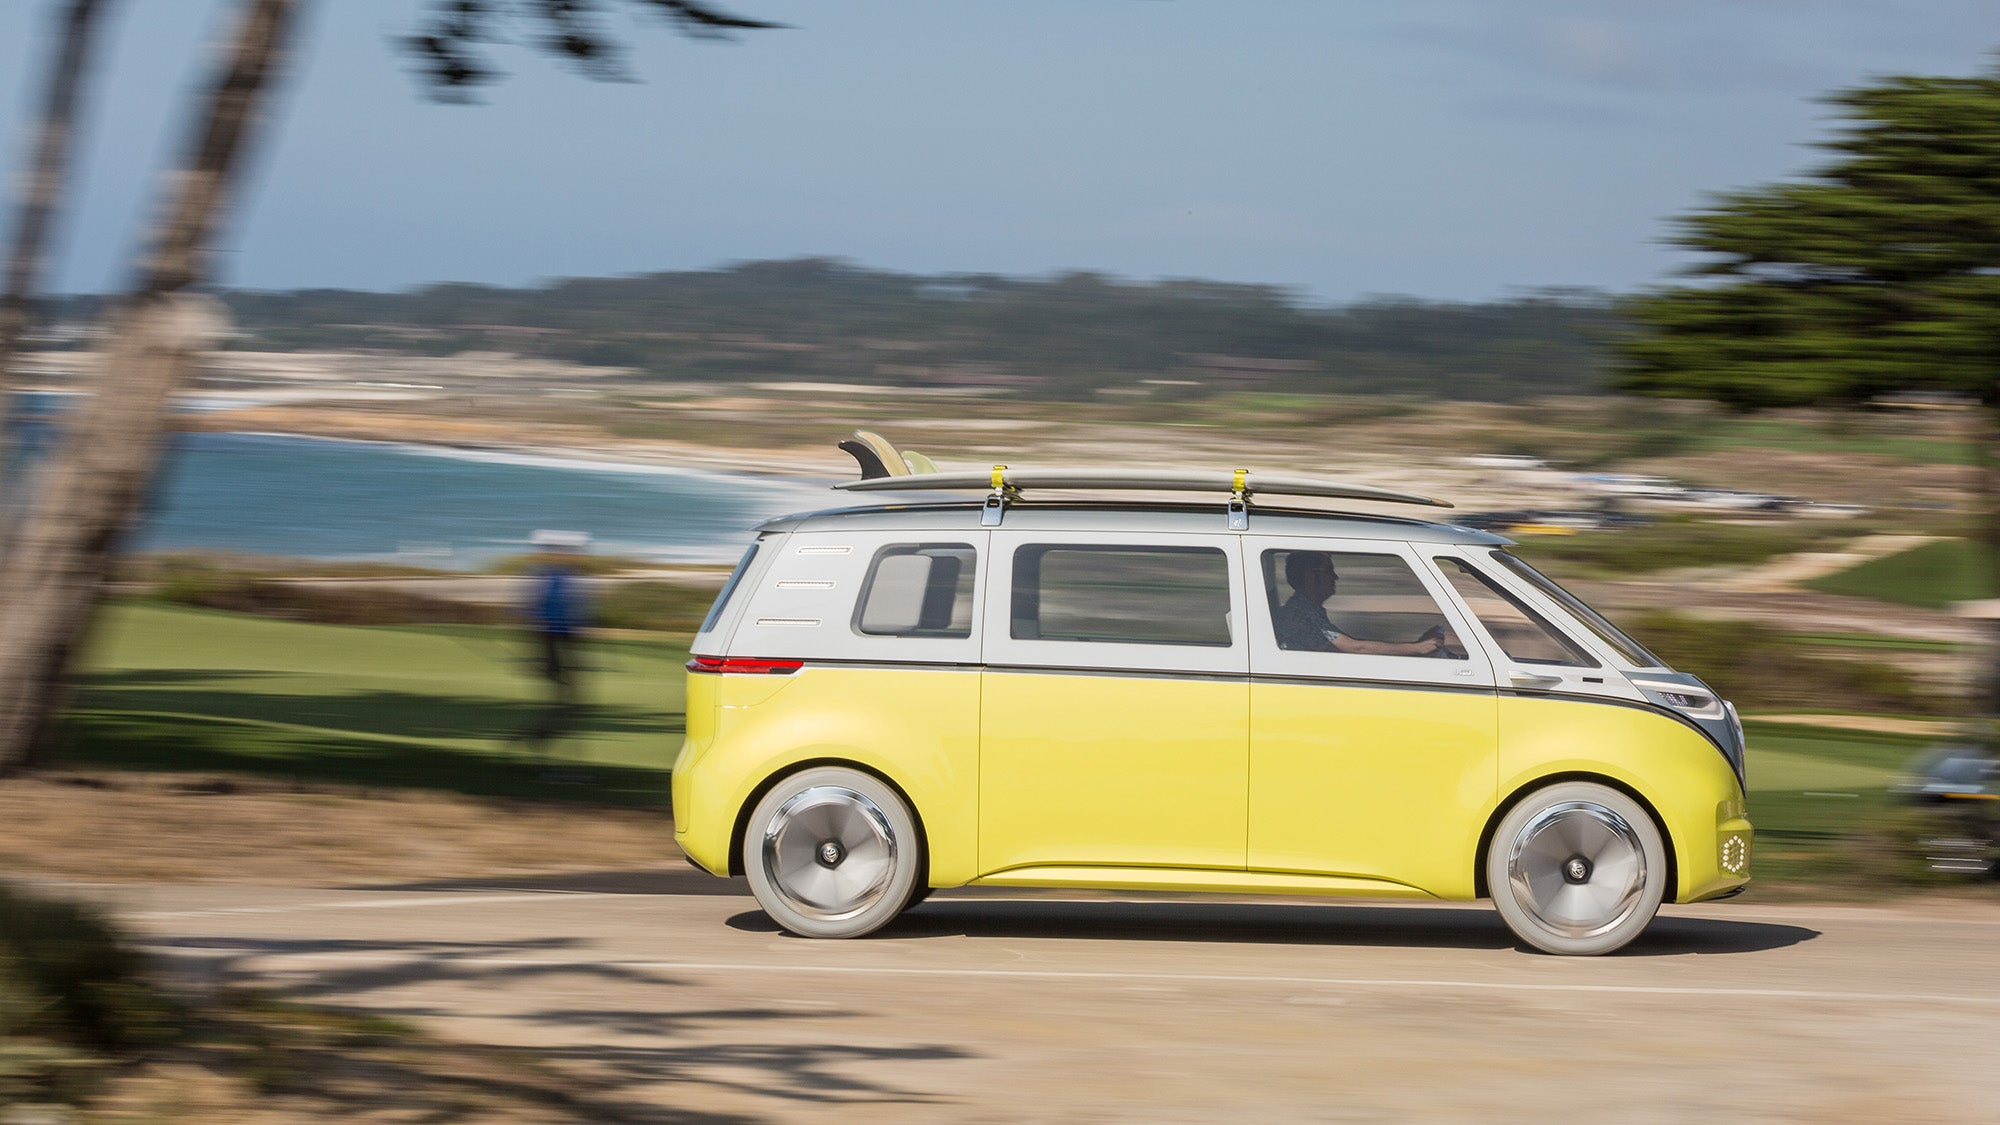 This is VW's first electric Microbus, coming 2022 - Revolution-Green